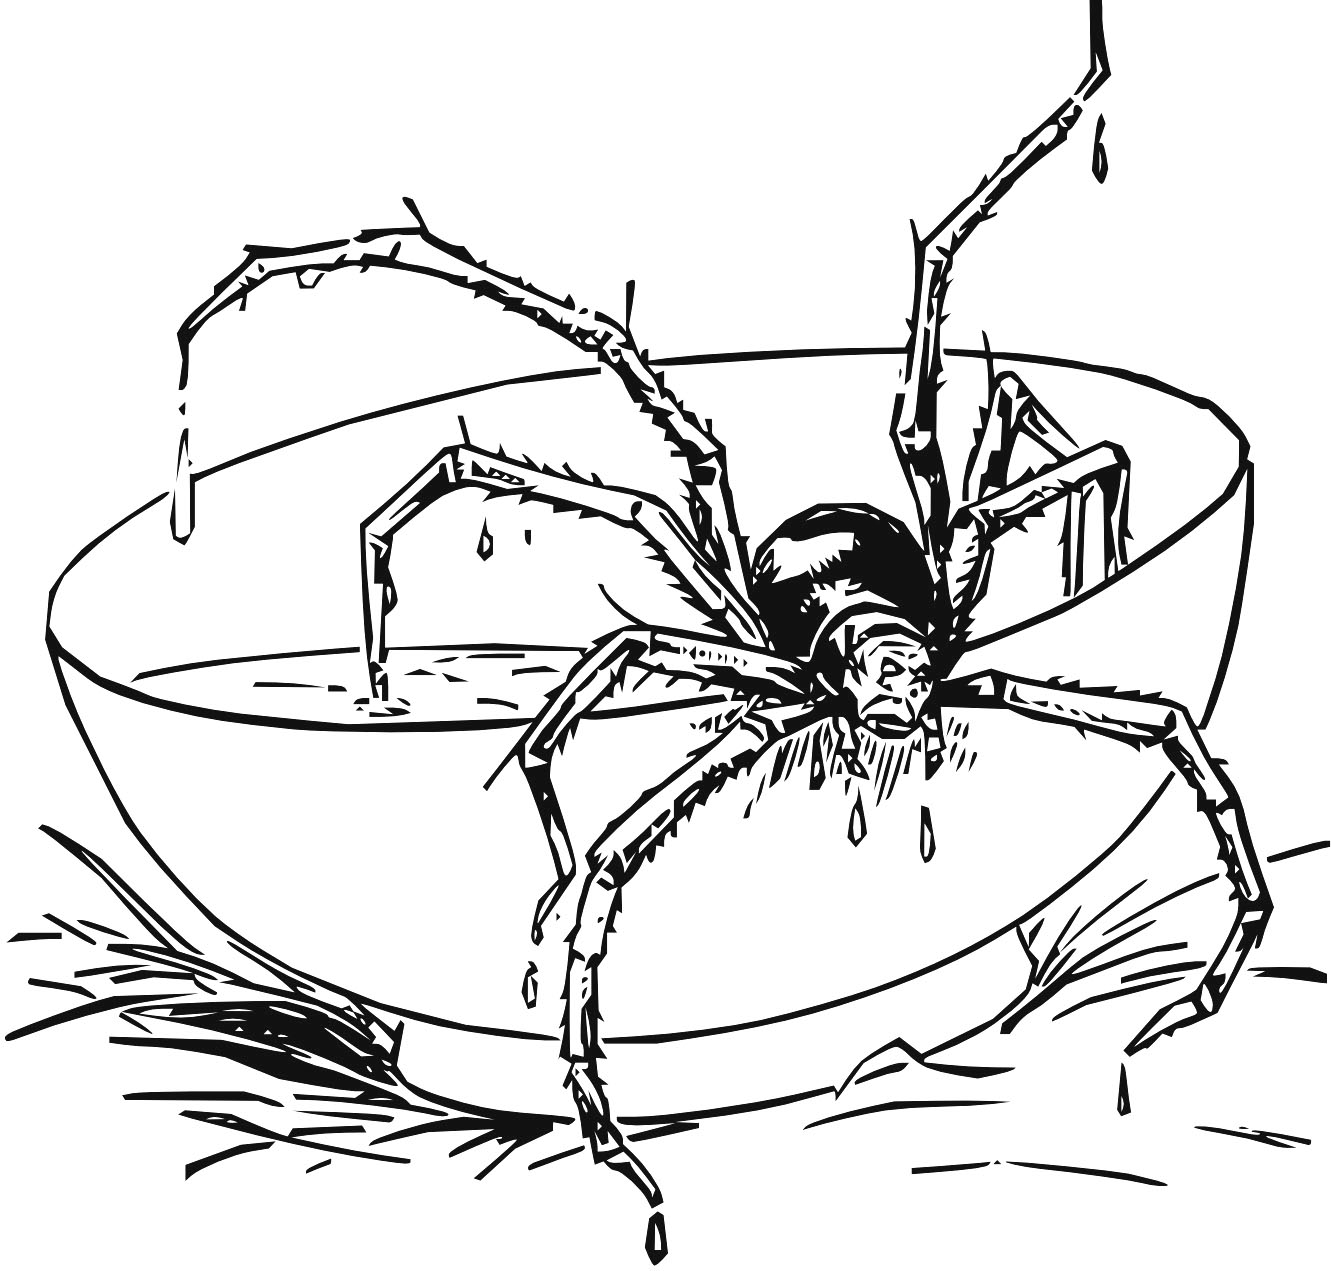 Redback Spider coloring #18, Download drawings